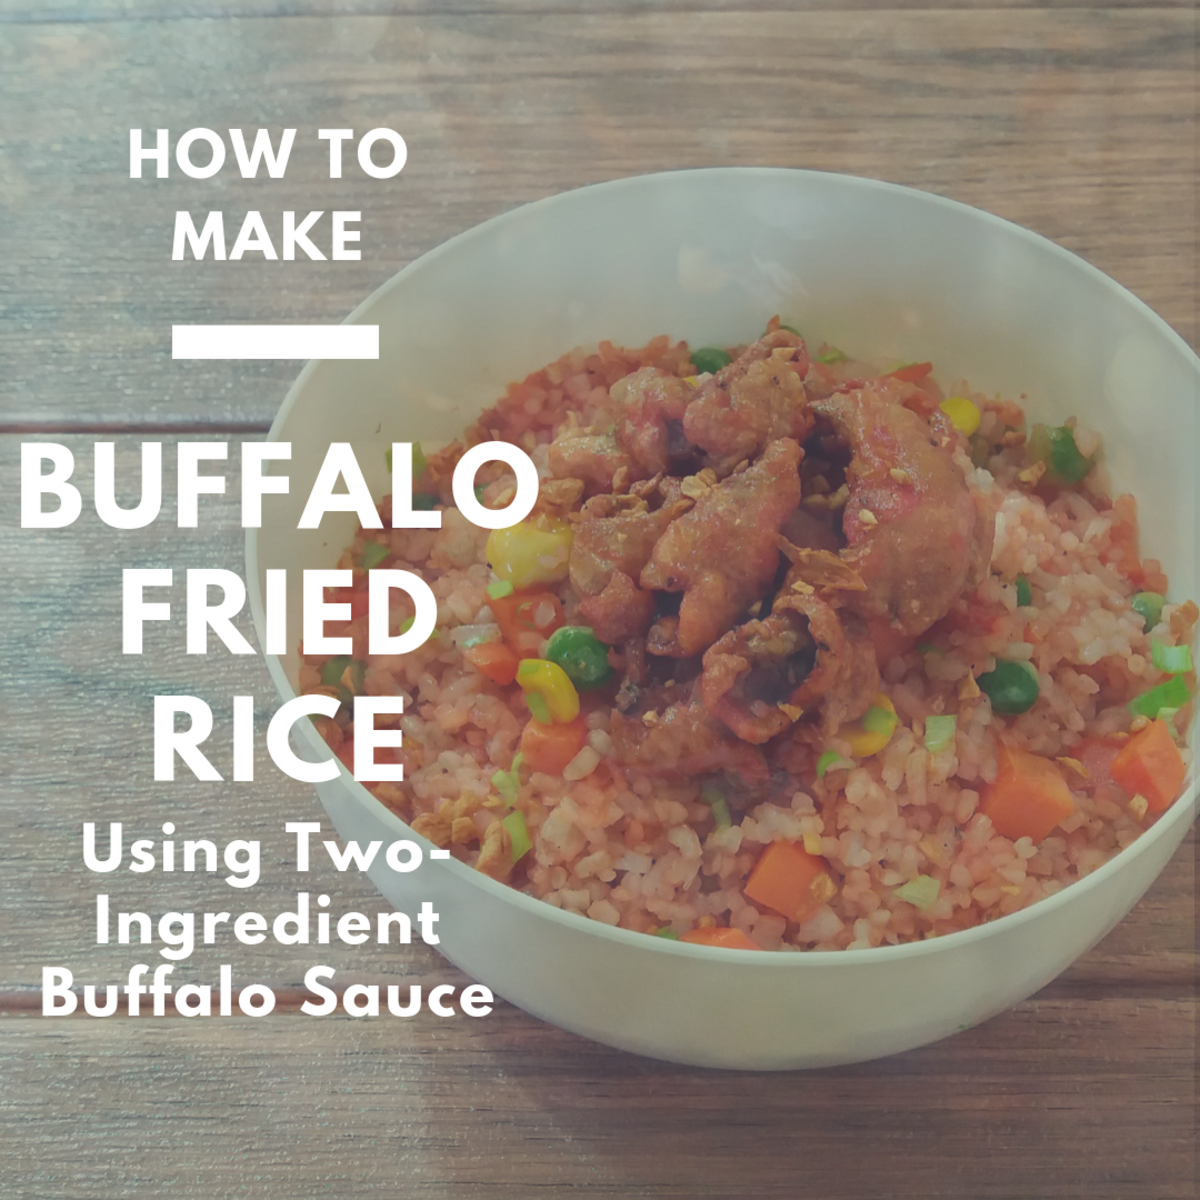 How to make chicken skin fried rice with two-ingredient Buffalo sauce